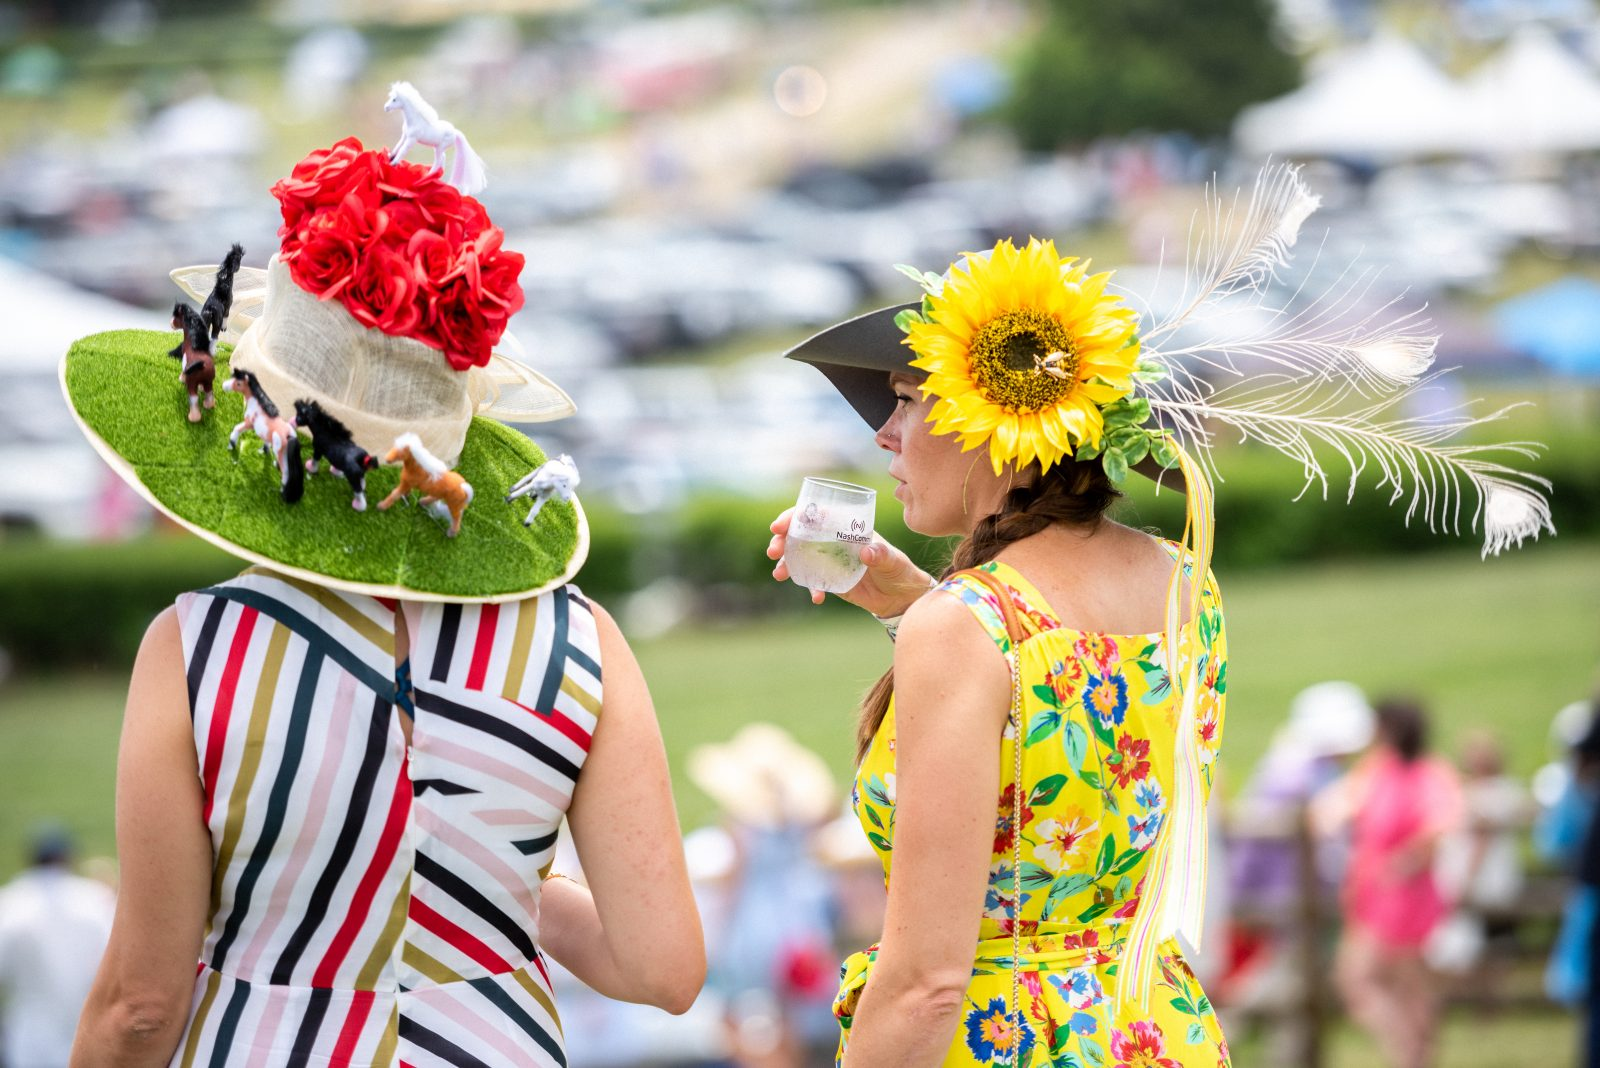 Two women, one in a striped dress and one in a yellow floral dress at Steeplechase